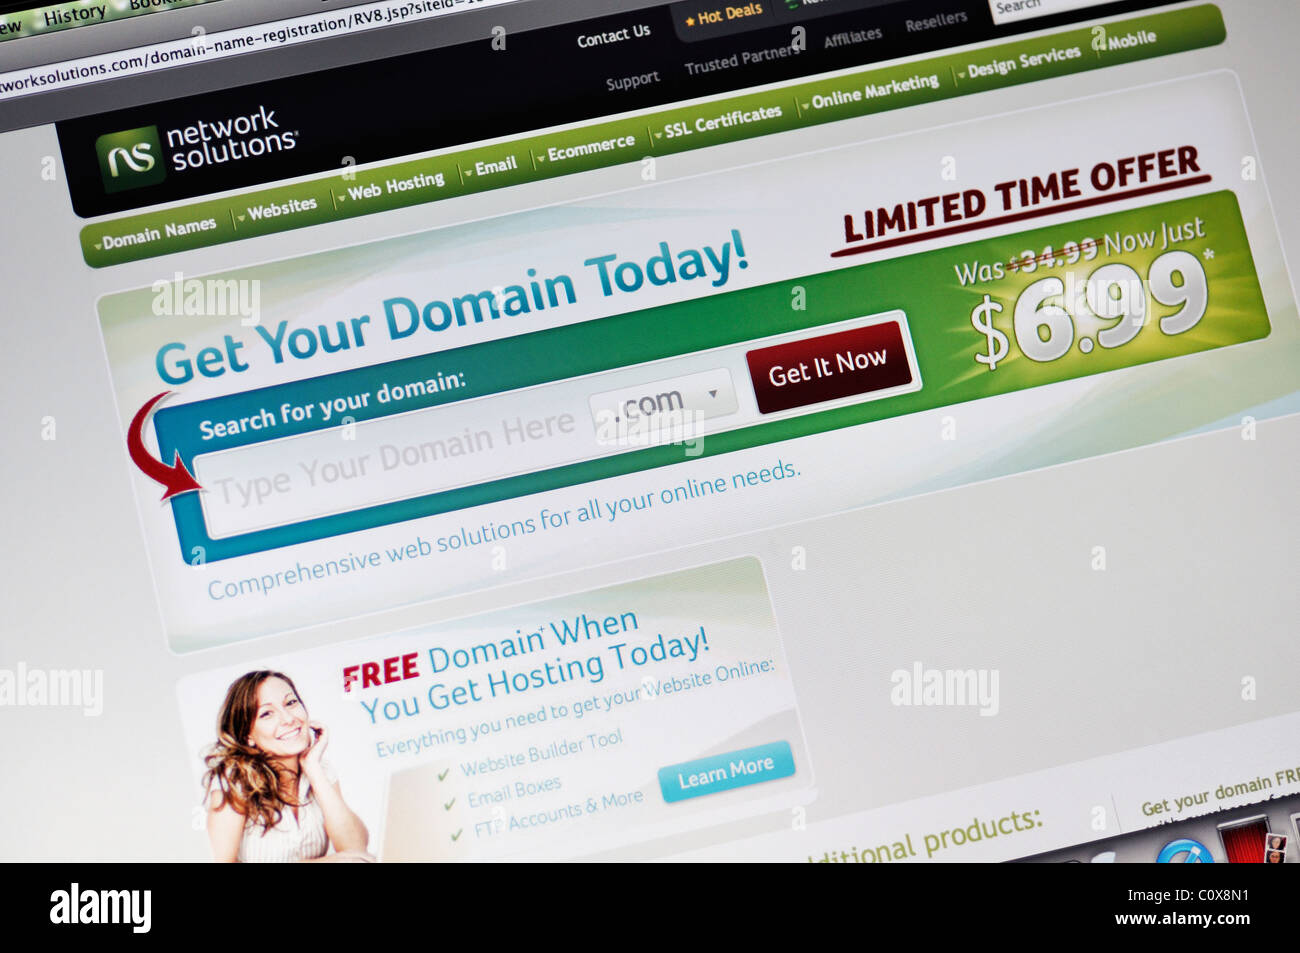 Network Solutions website - domain names, web hosting and online marketing - Stock Image